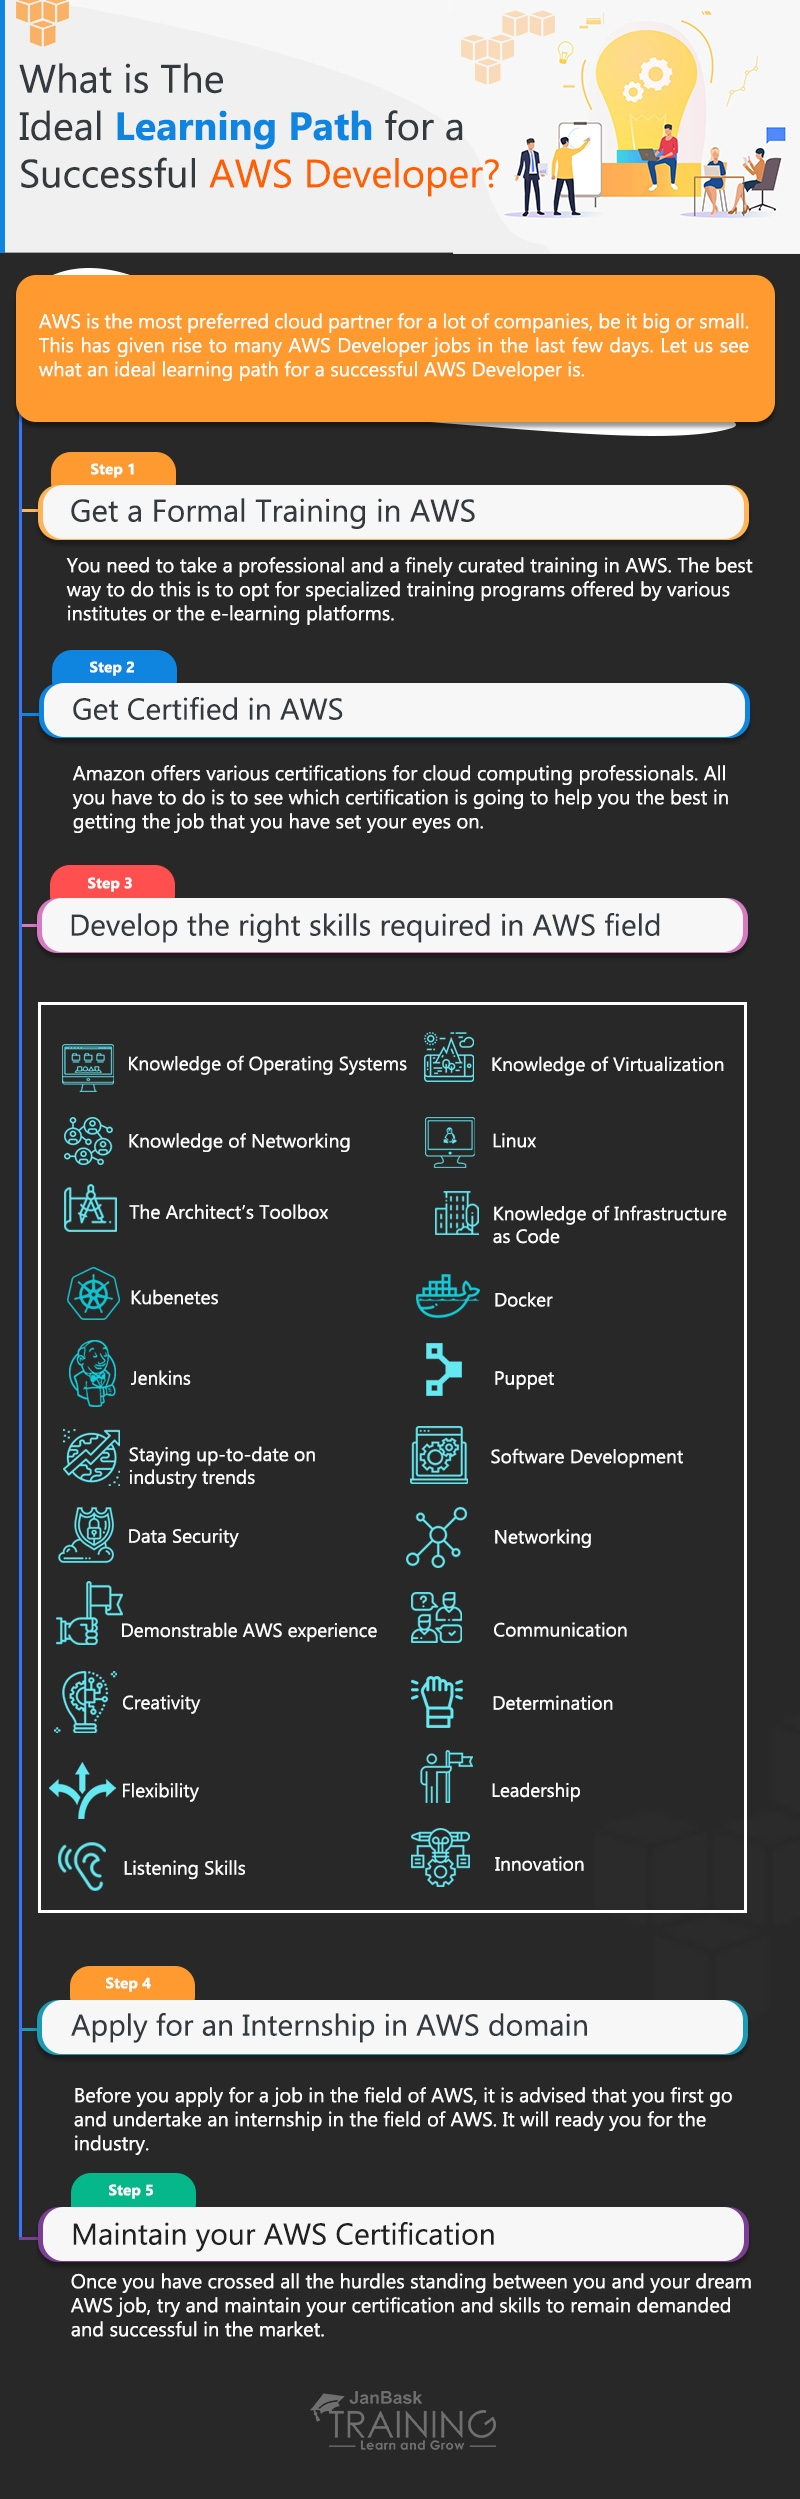 AWS Developer learning path - Future Career Scope & Roadmap infographic